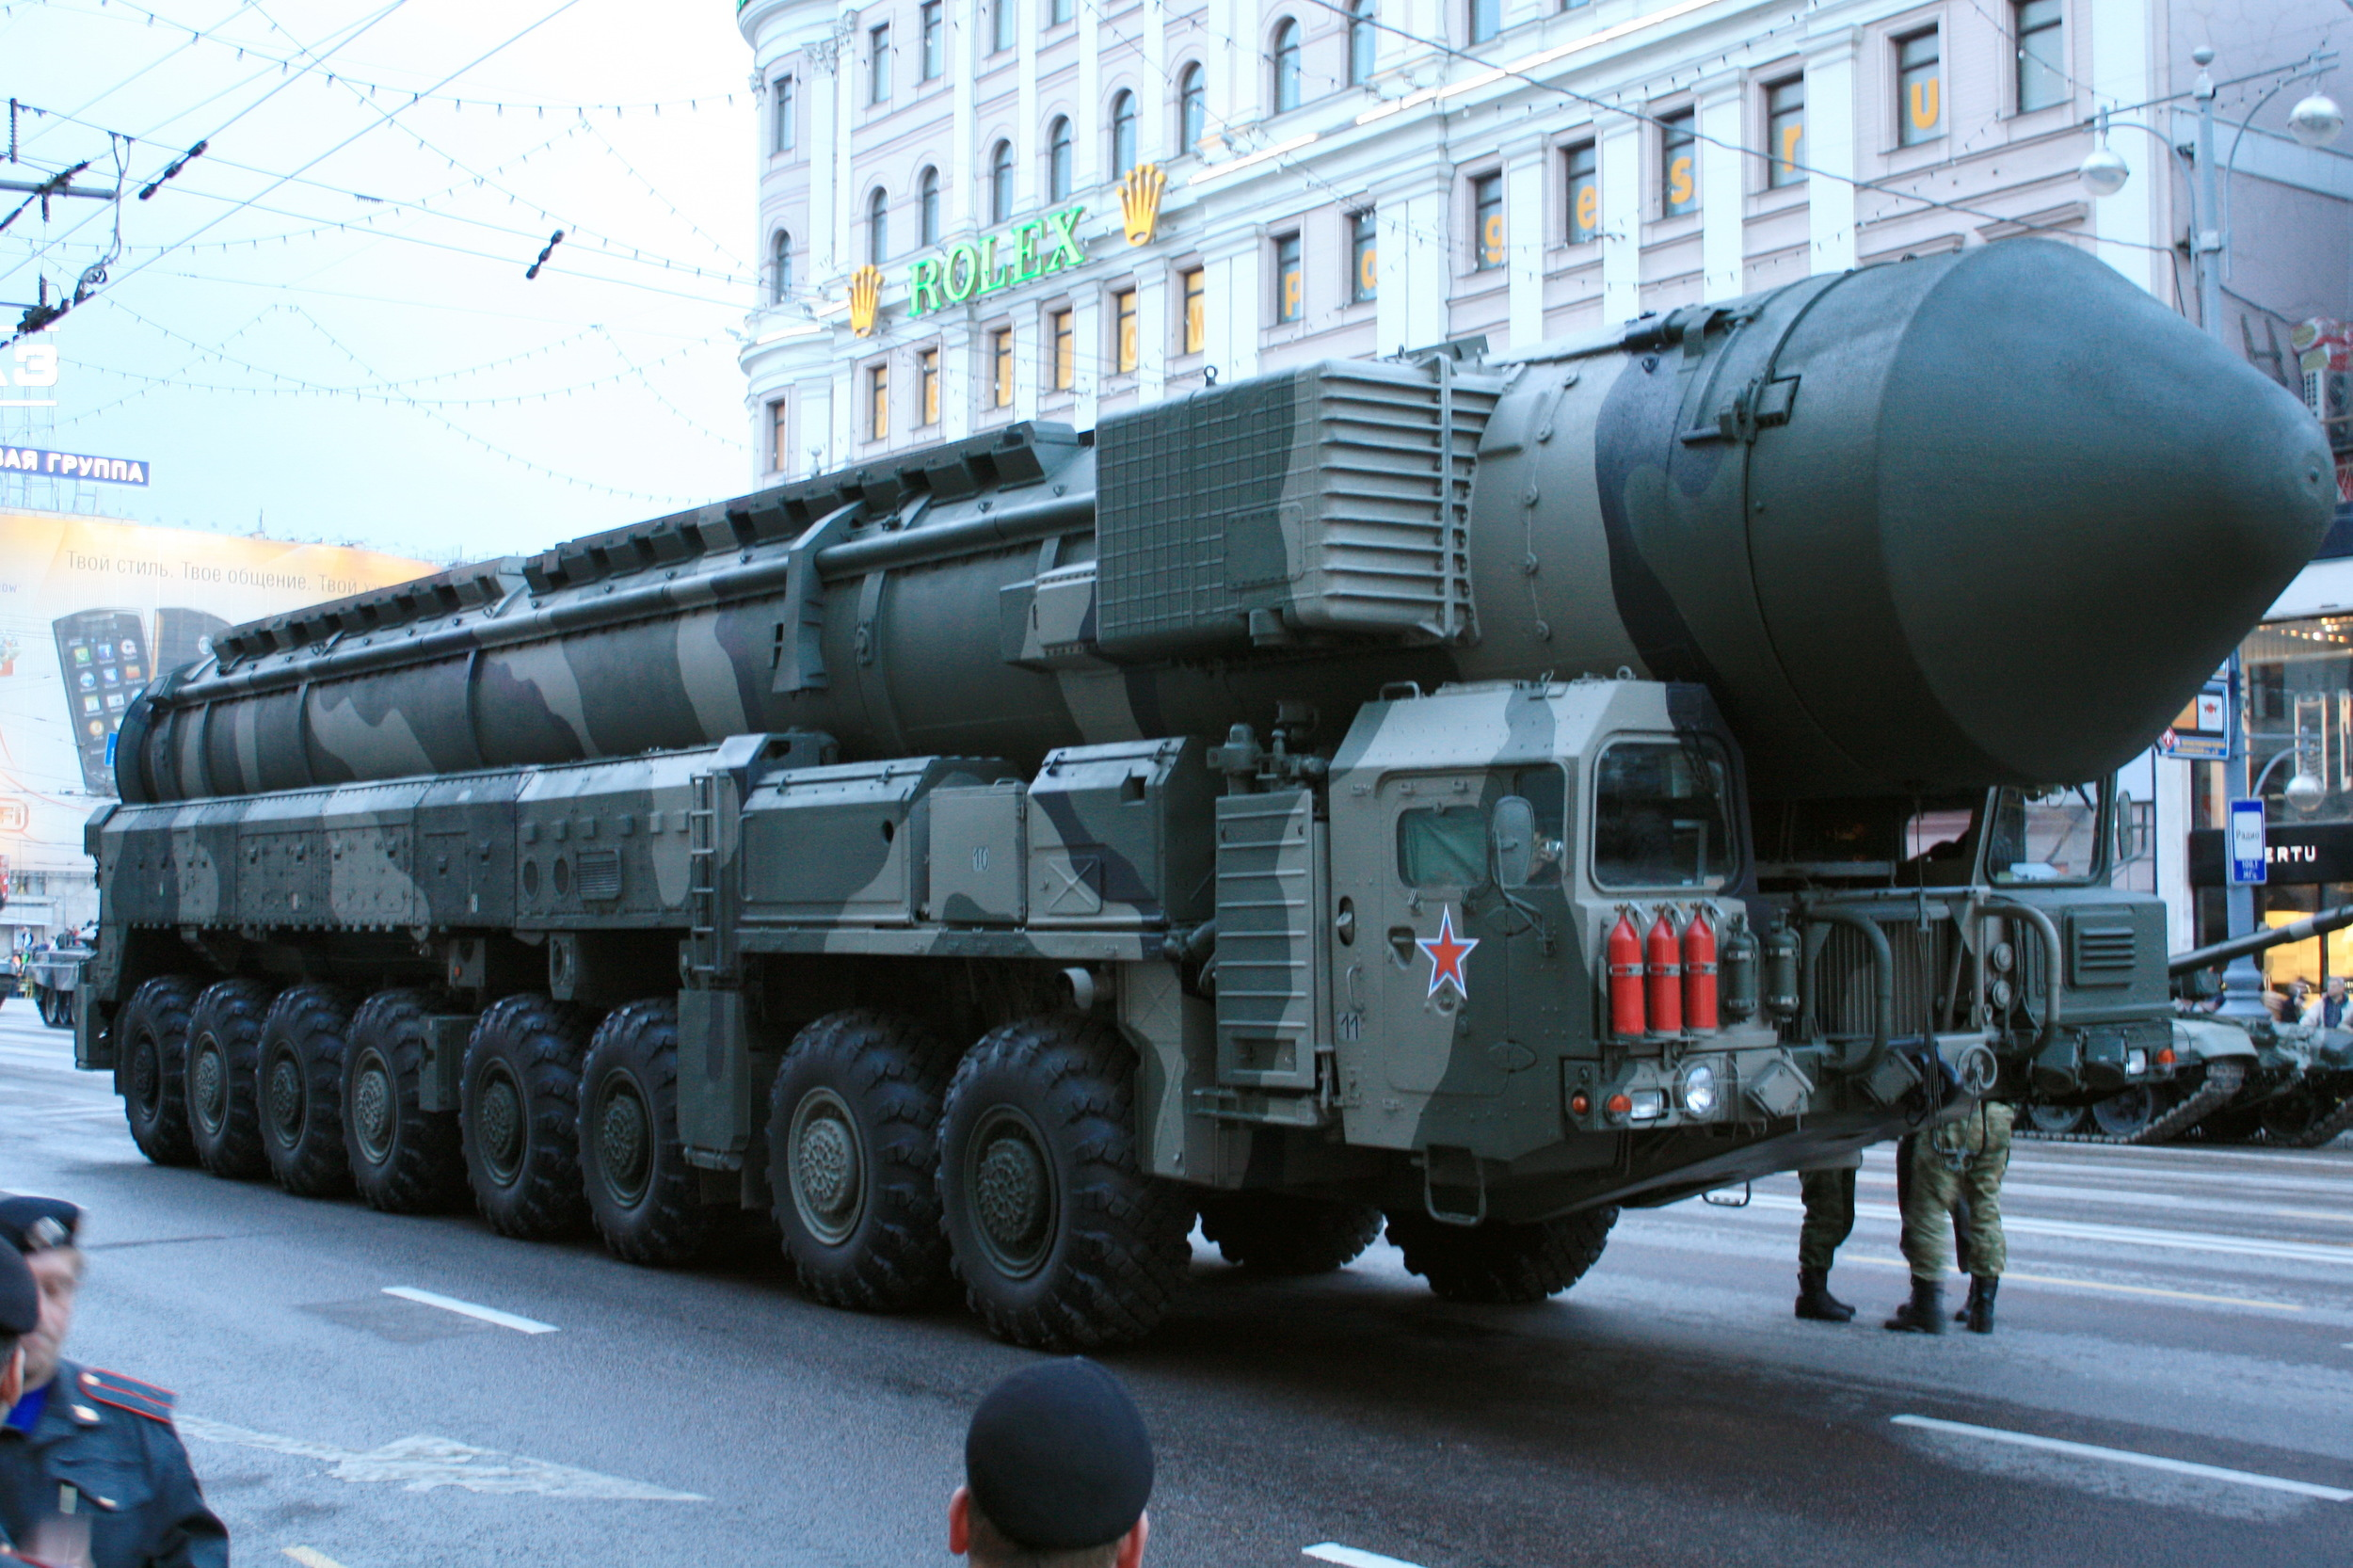 Russian Topol-M on Parade. Source: Wikipedia, creative commons.